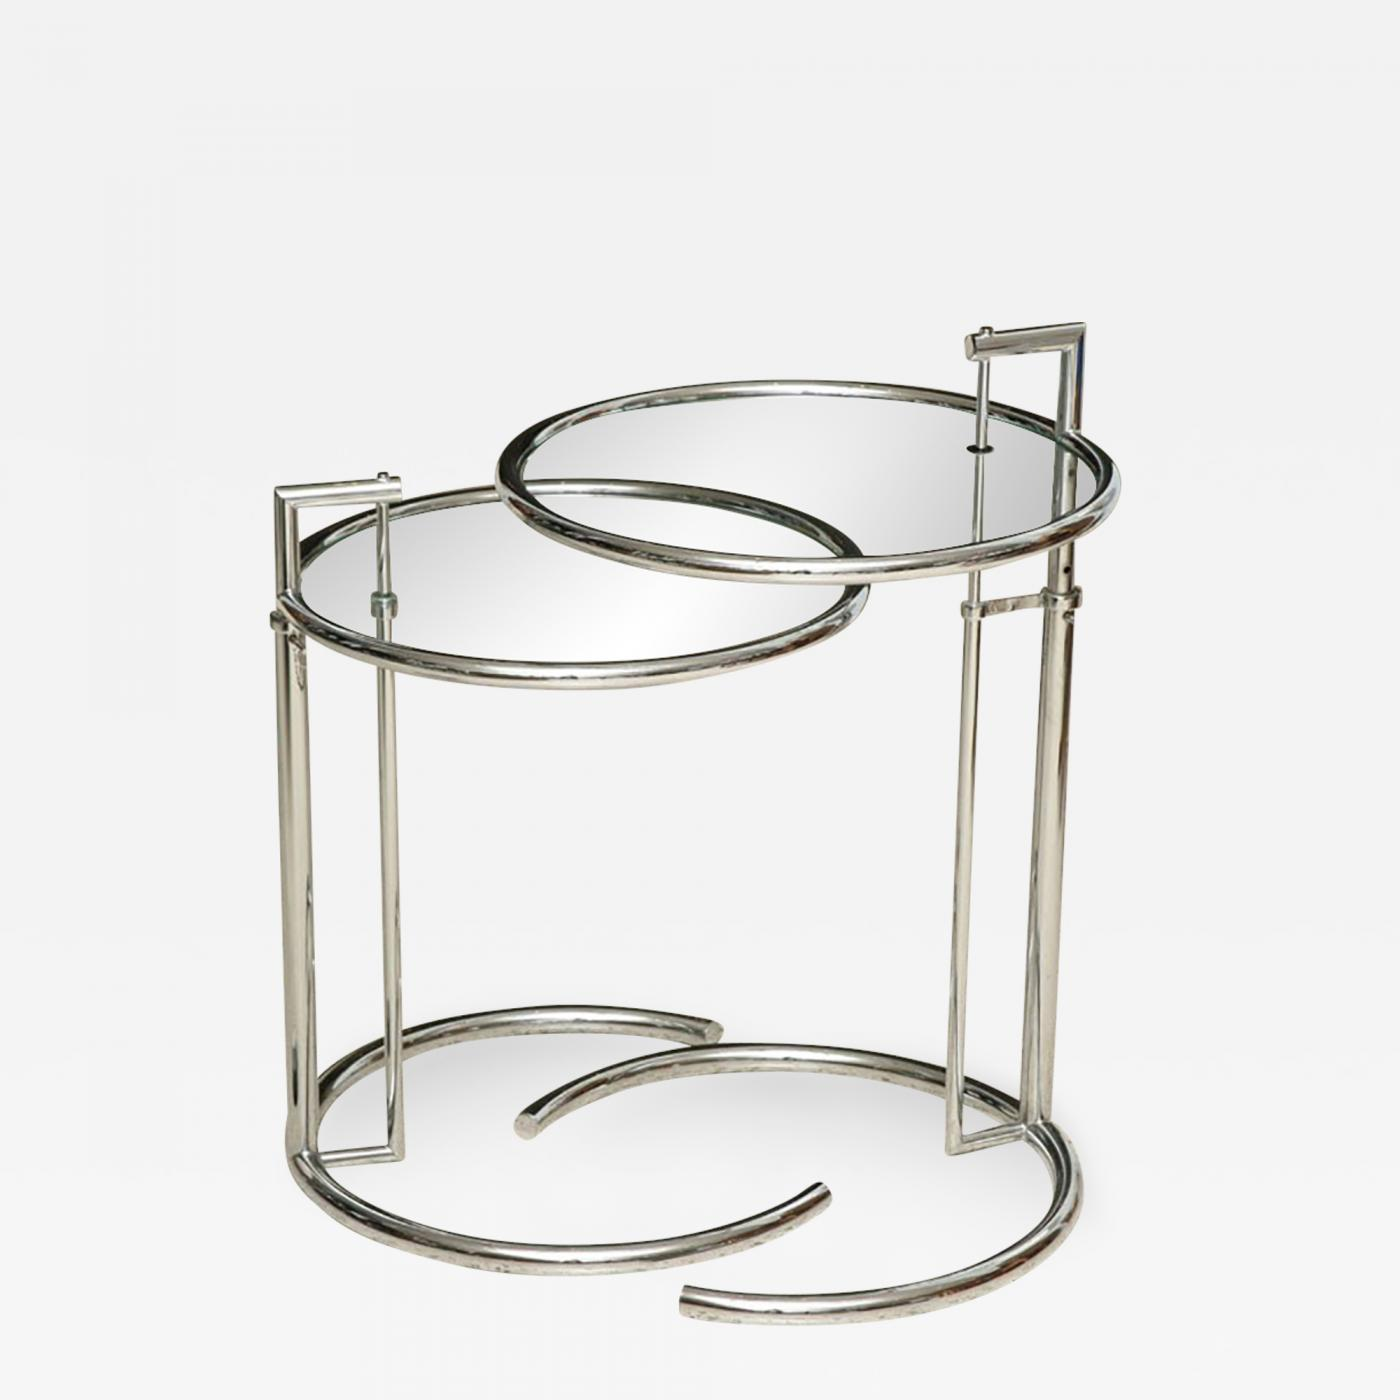 Eileen Gray Table Eileen Gray A Pair Of Eileen Gray Polished Chrome And Glass Tables